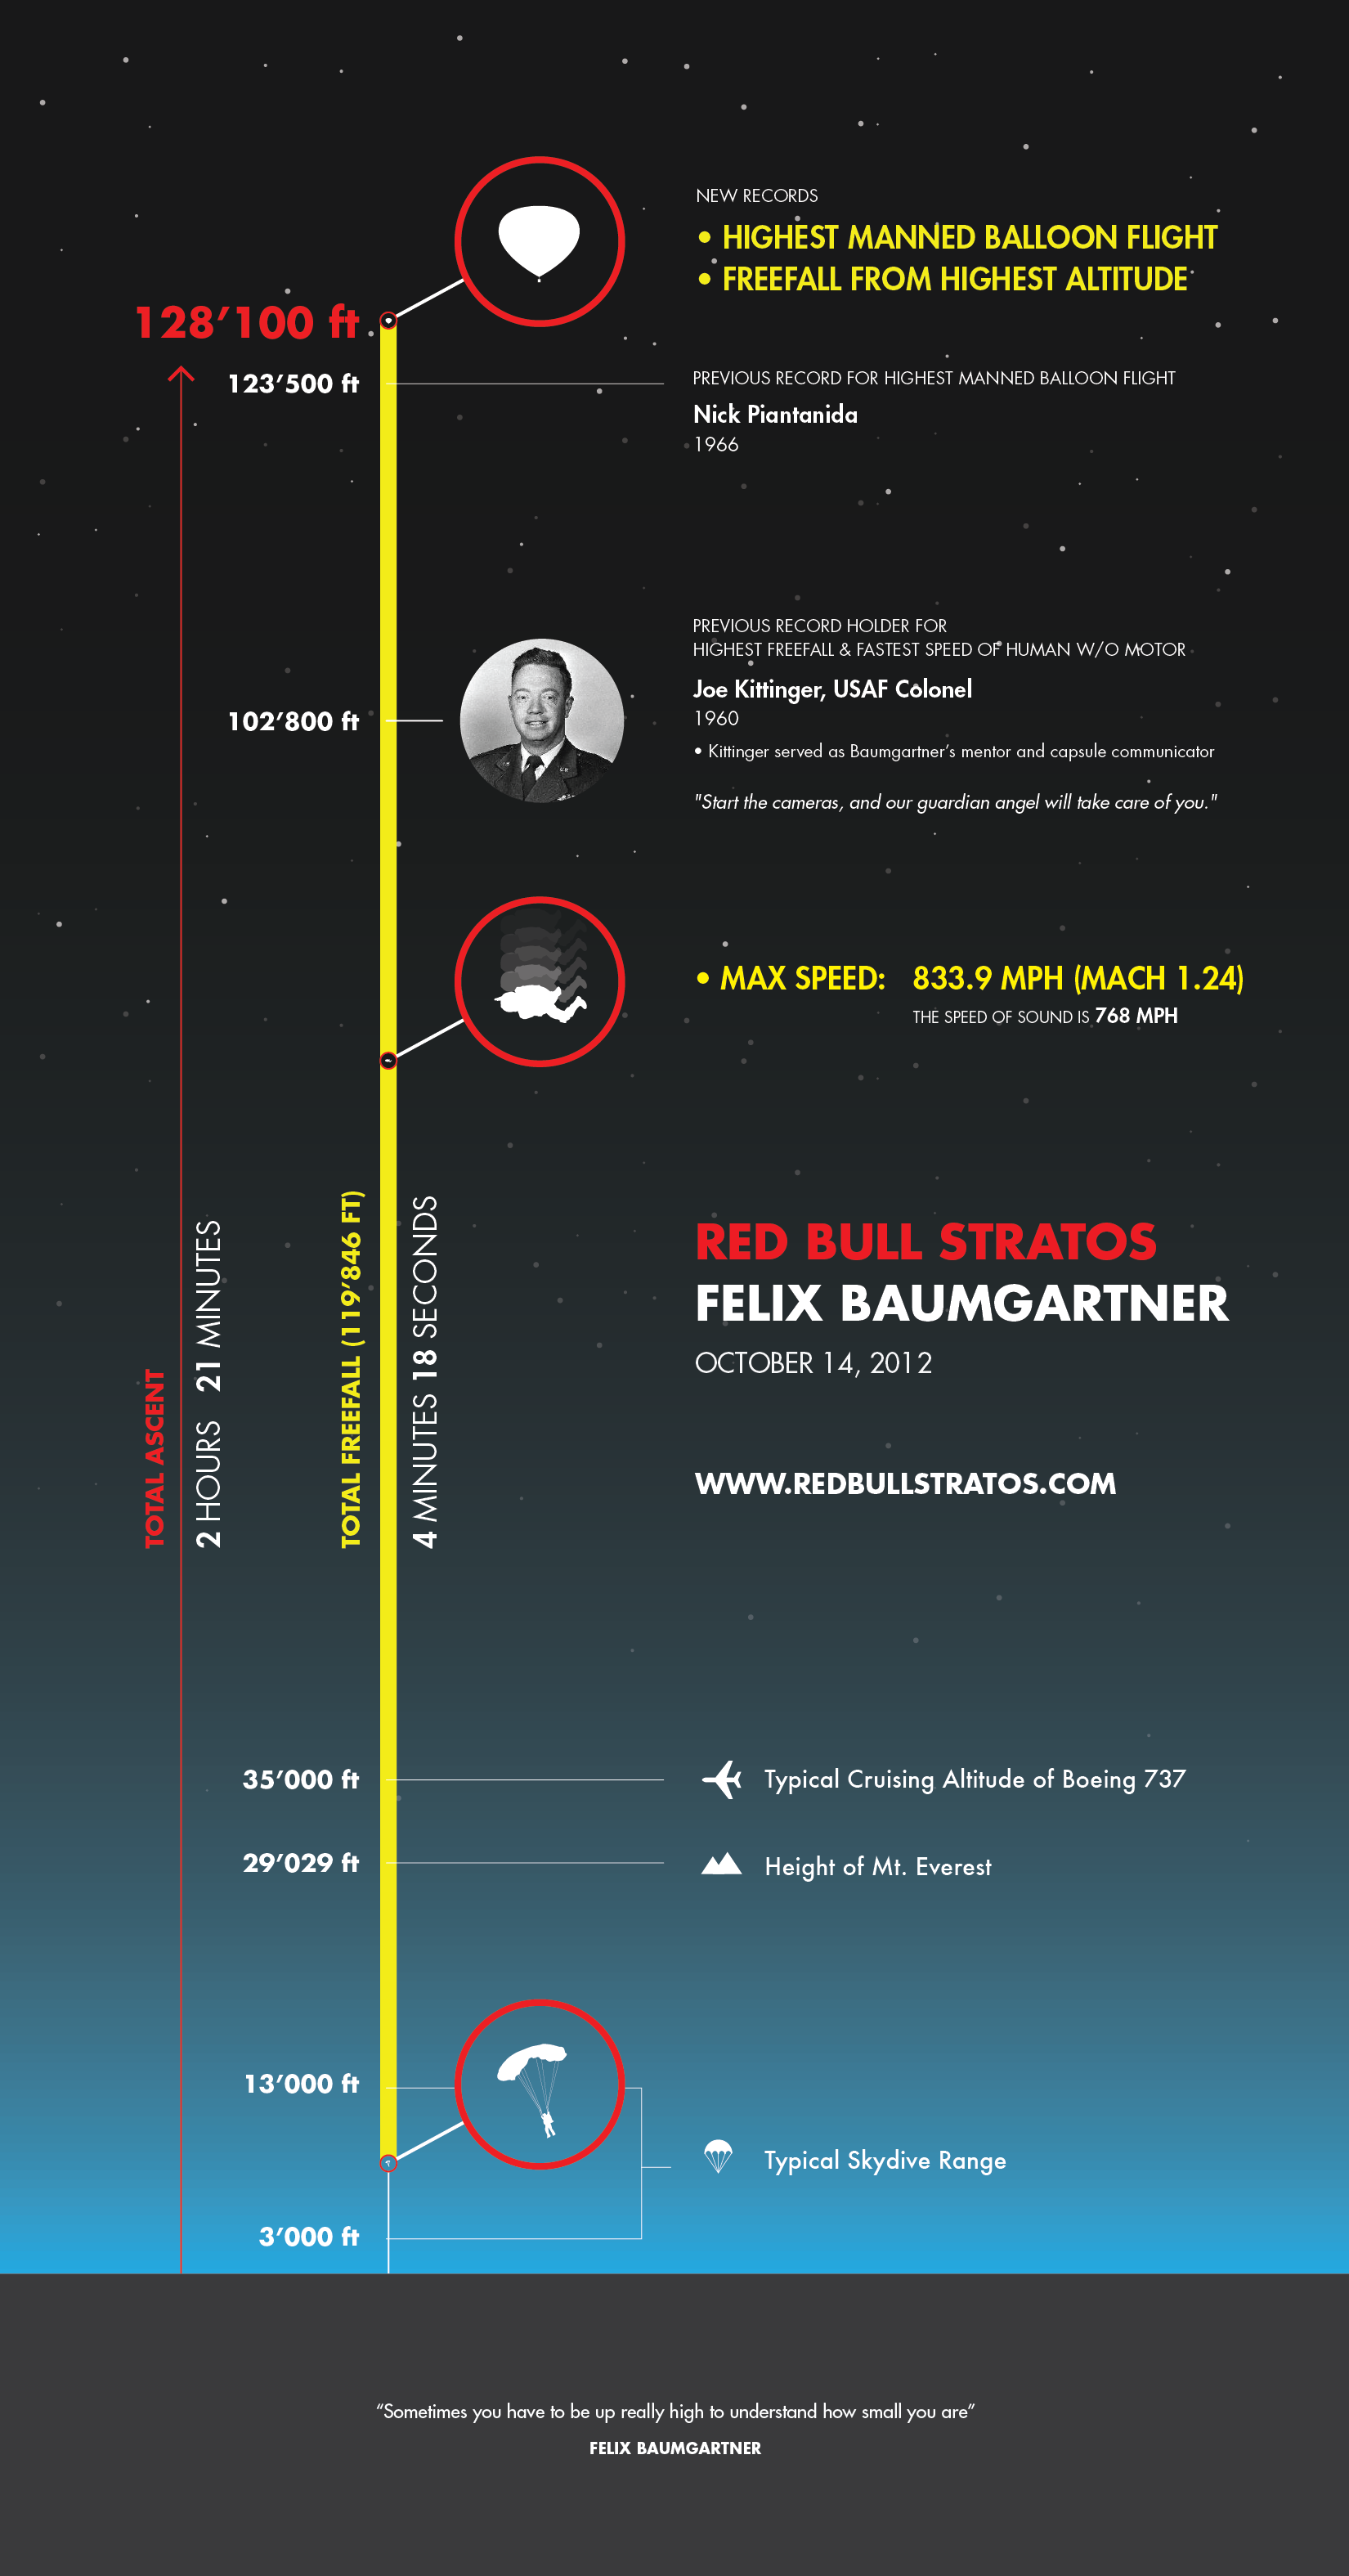 Sursă infografic: [http://visual.ly/red-bull-stratos-felix-baumgartner]